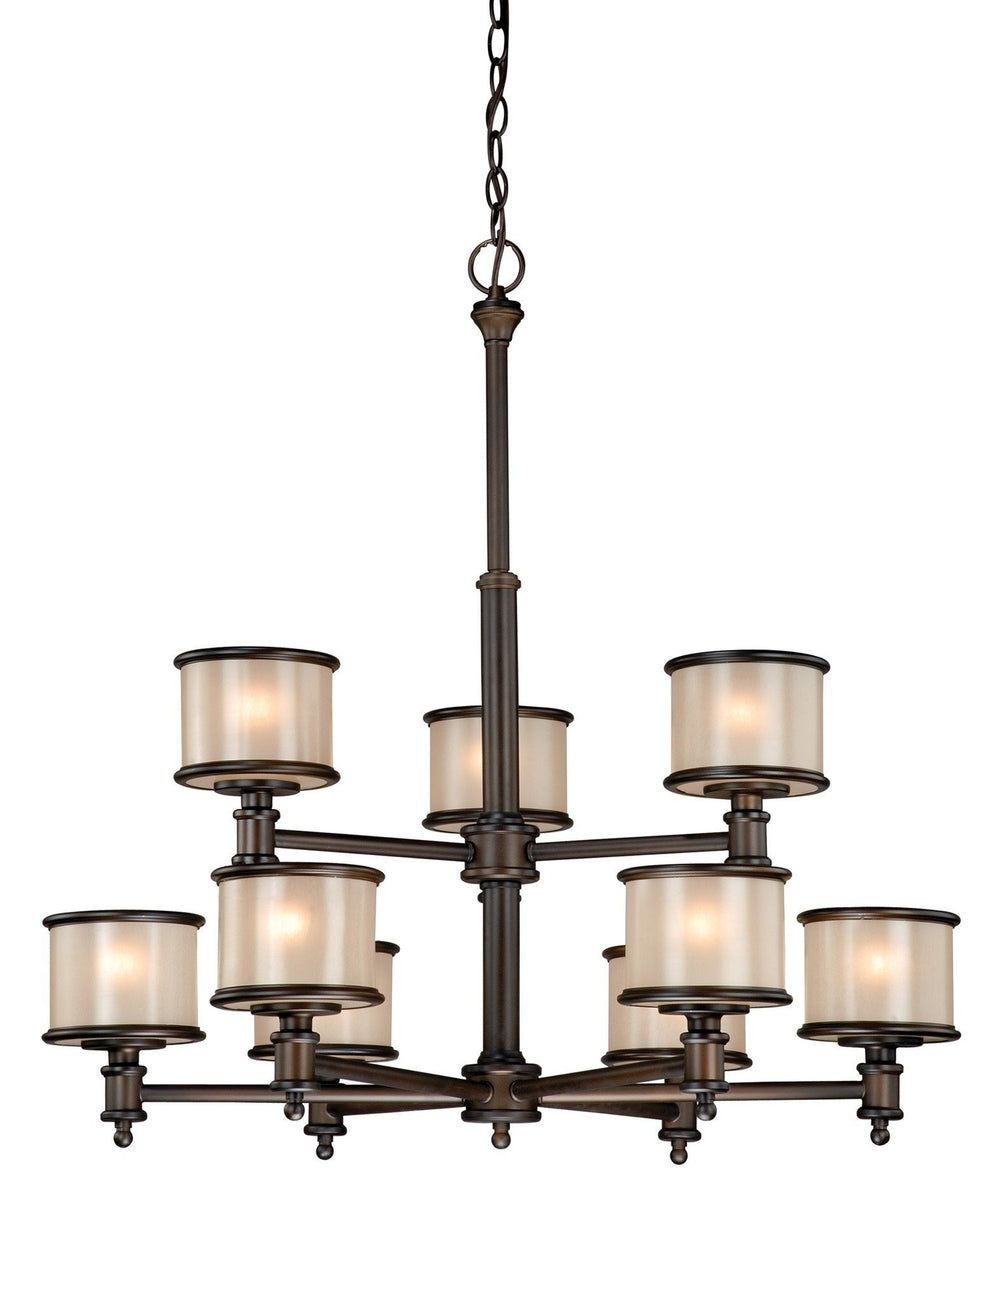 CR-CHU009NB Vaxcel Carlisle 9L Chandelier Noble Bronze